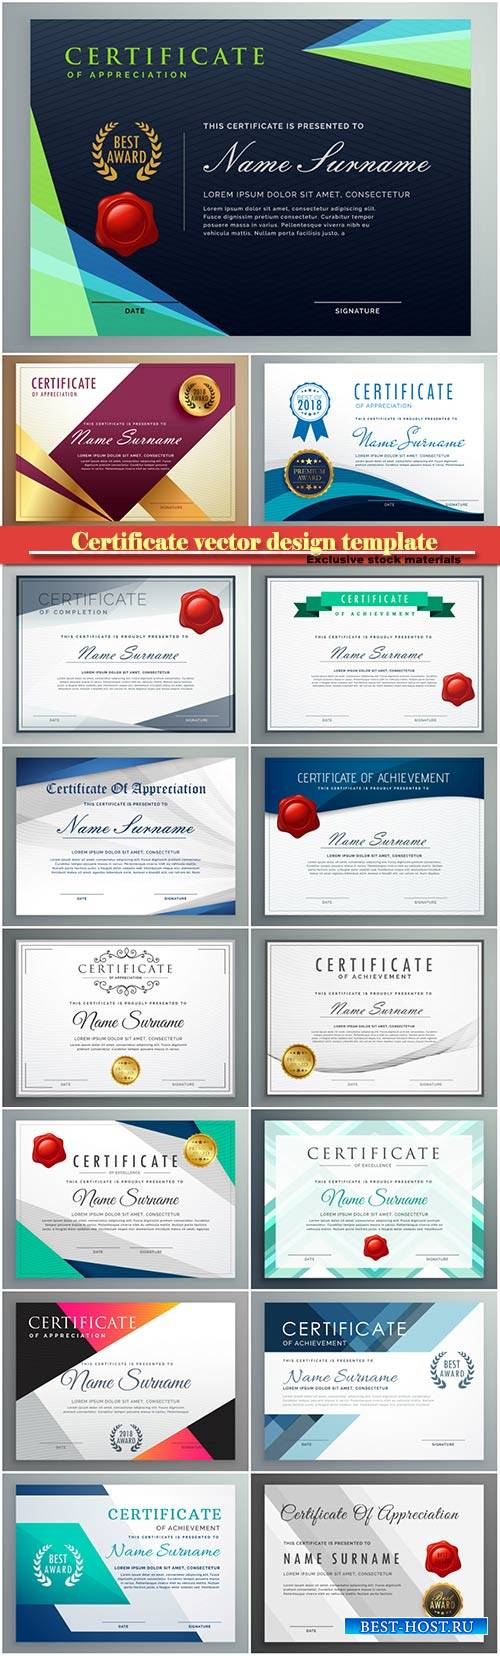 Certificate and vector diploma design template # 38